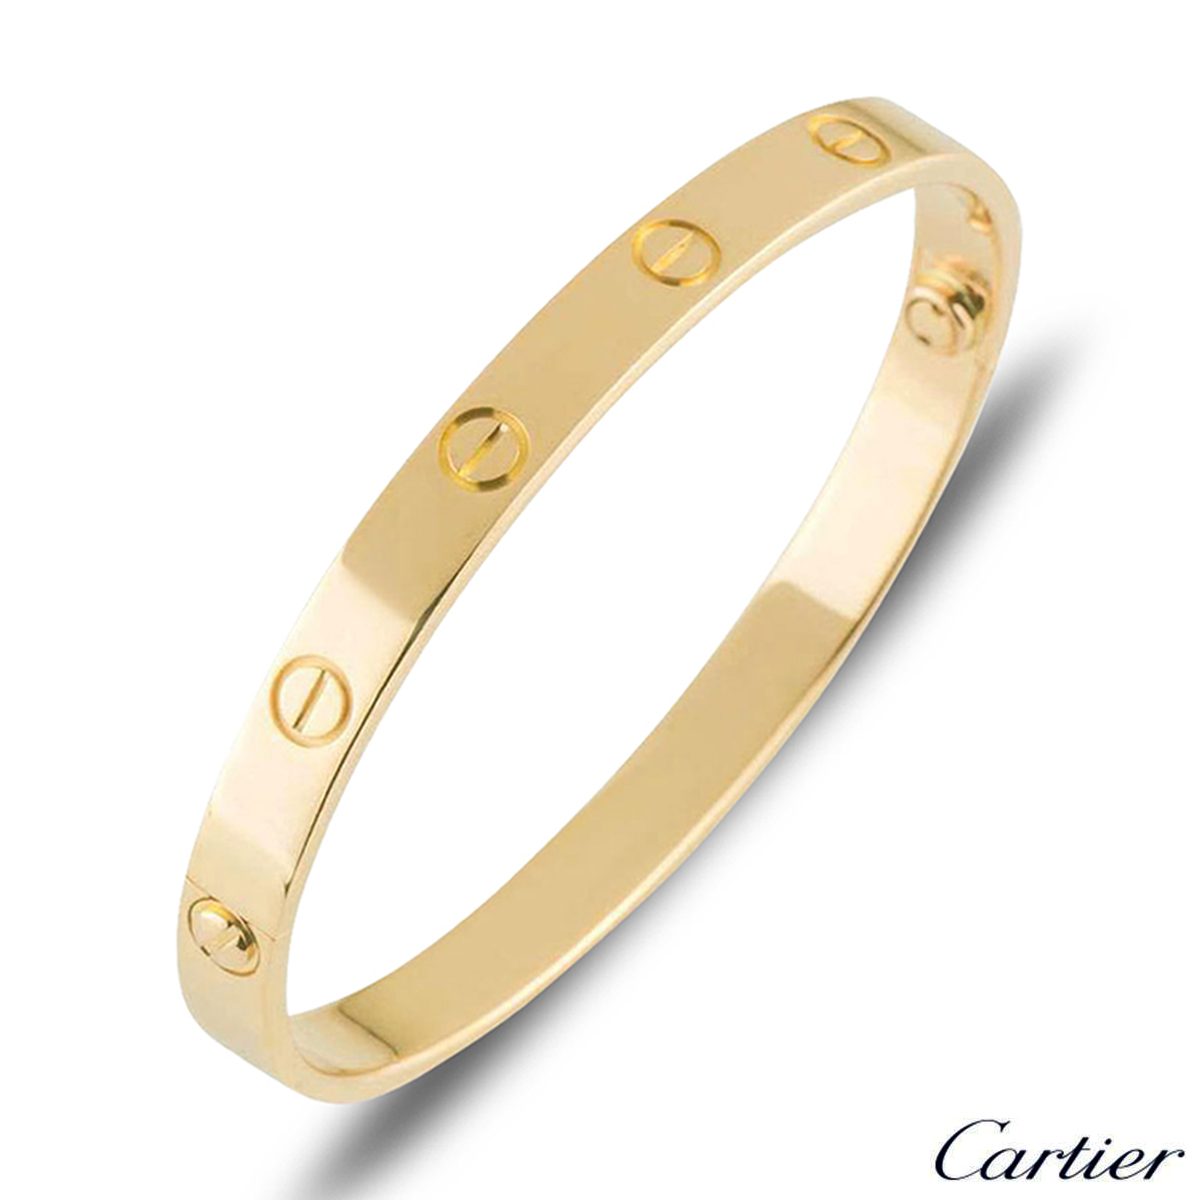 Cartier Yellow Gold Plain Love Bracelet Size 21 B6035521